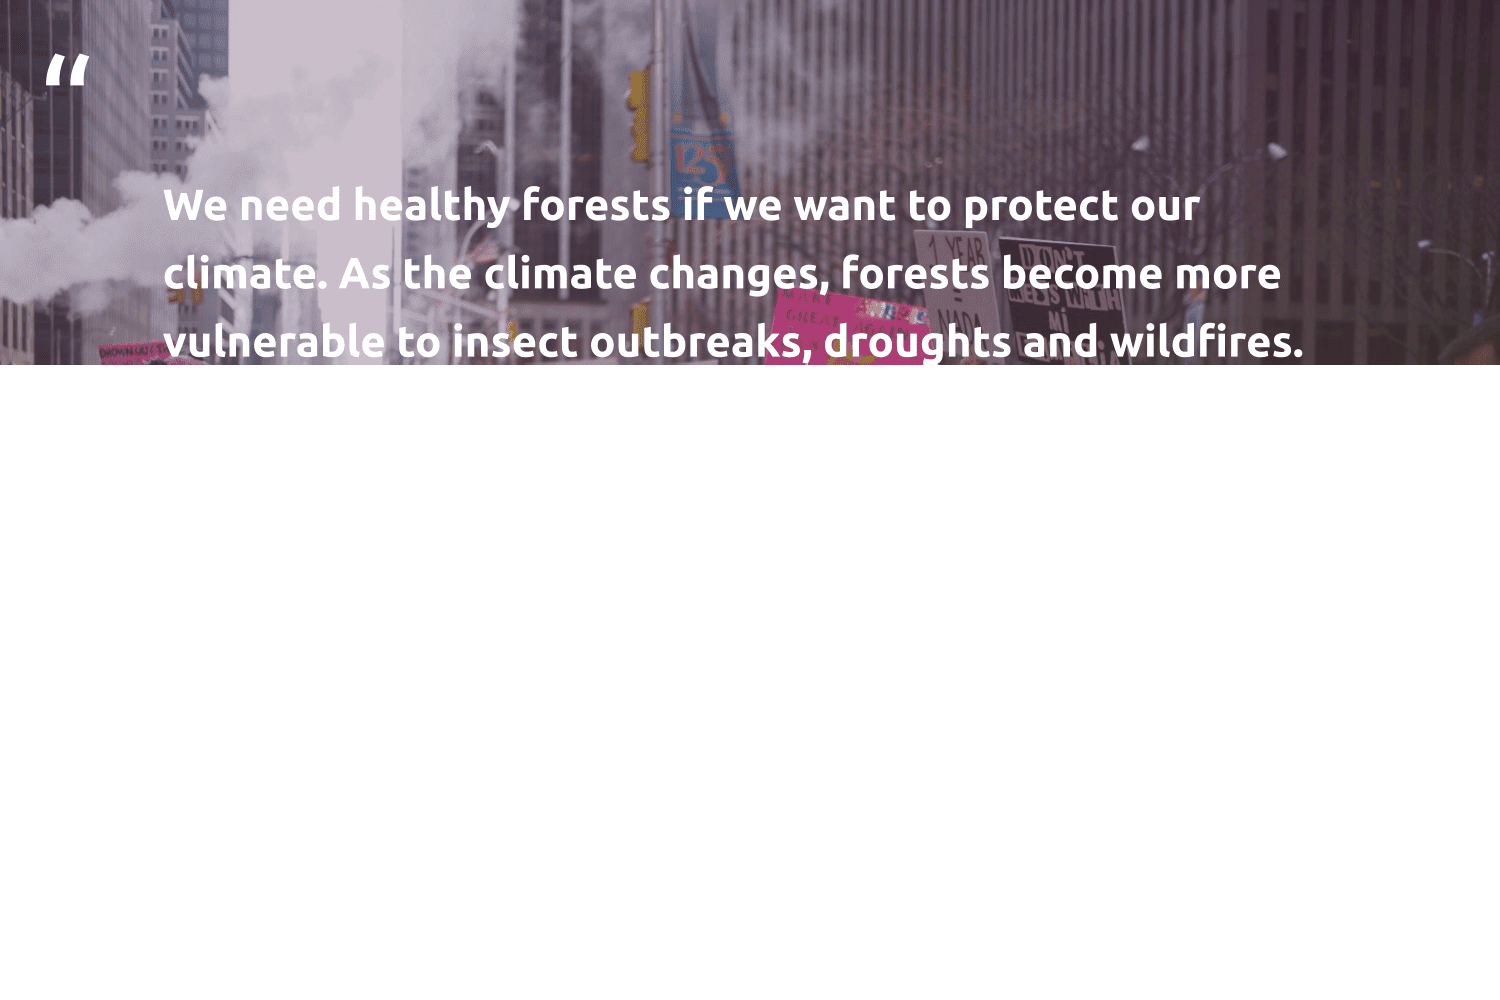 """""""We need healthy forests if we want to protect our climate. As the climate changes, forests become more vulnerable to insect outbreaks, droughts and wildfires. Simultaneously, when our forests are destroyed, their carbon is released back into the atmosphere, further impacting climate change. It's a horrifying one-two punch.""""  - Chris Noth #trvst #quotes #climatechange #carbon #insect #climate #healthy #co2 #globalwarming #climateaction #actonclimate #collectiveaction"""